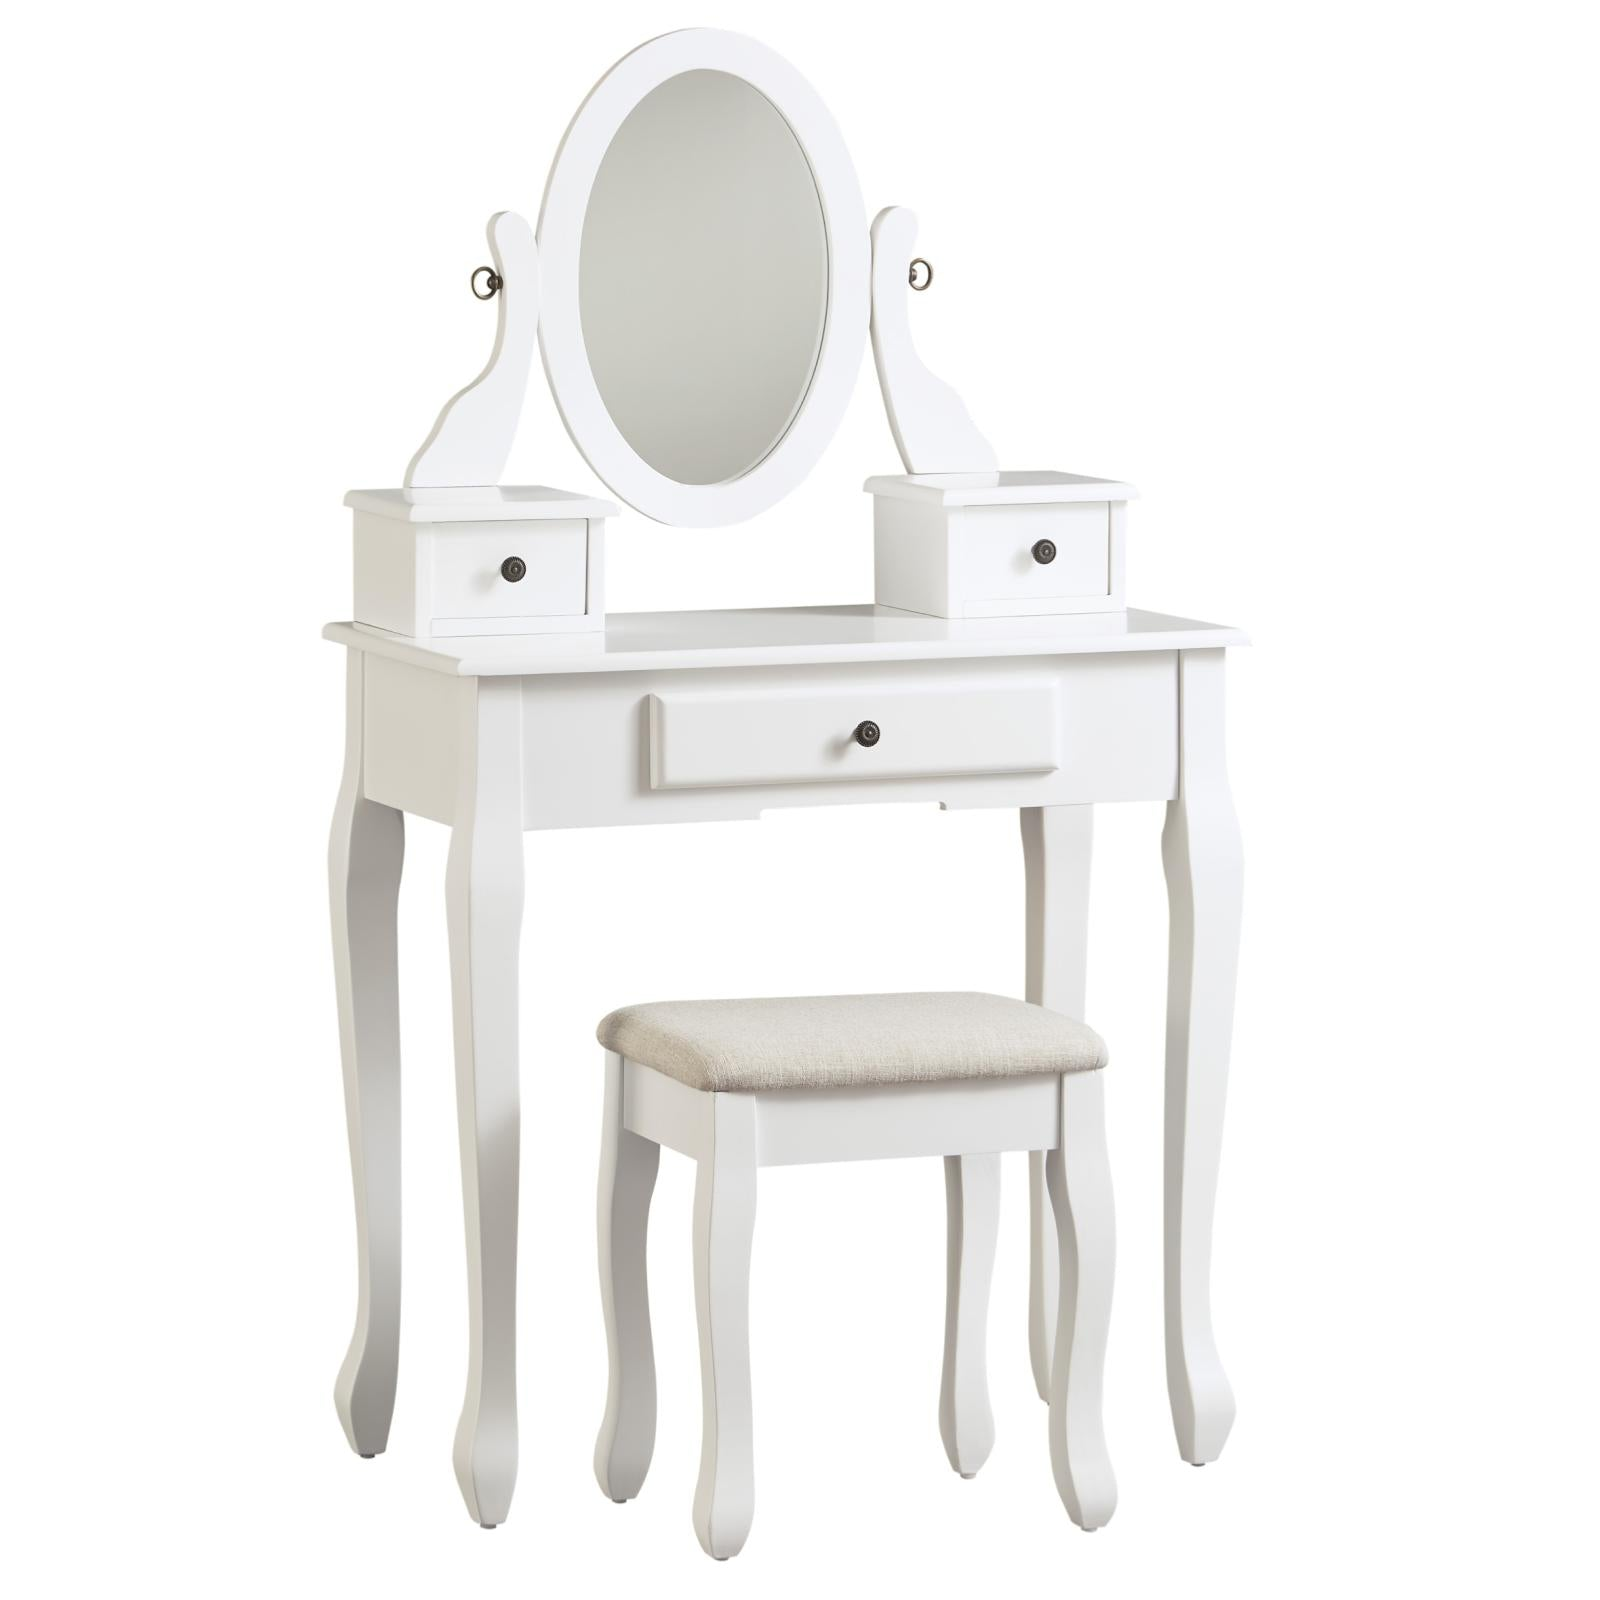 3 Piece Vanity Set.Kaslyn 3 Piece Vanity Set